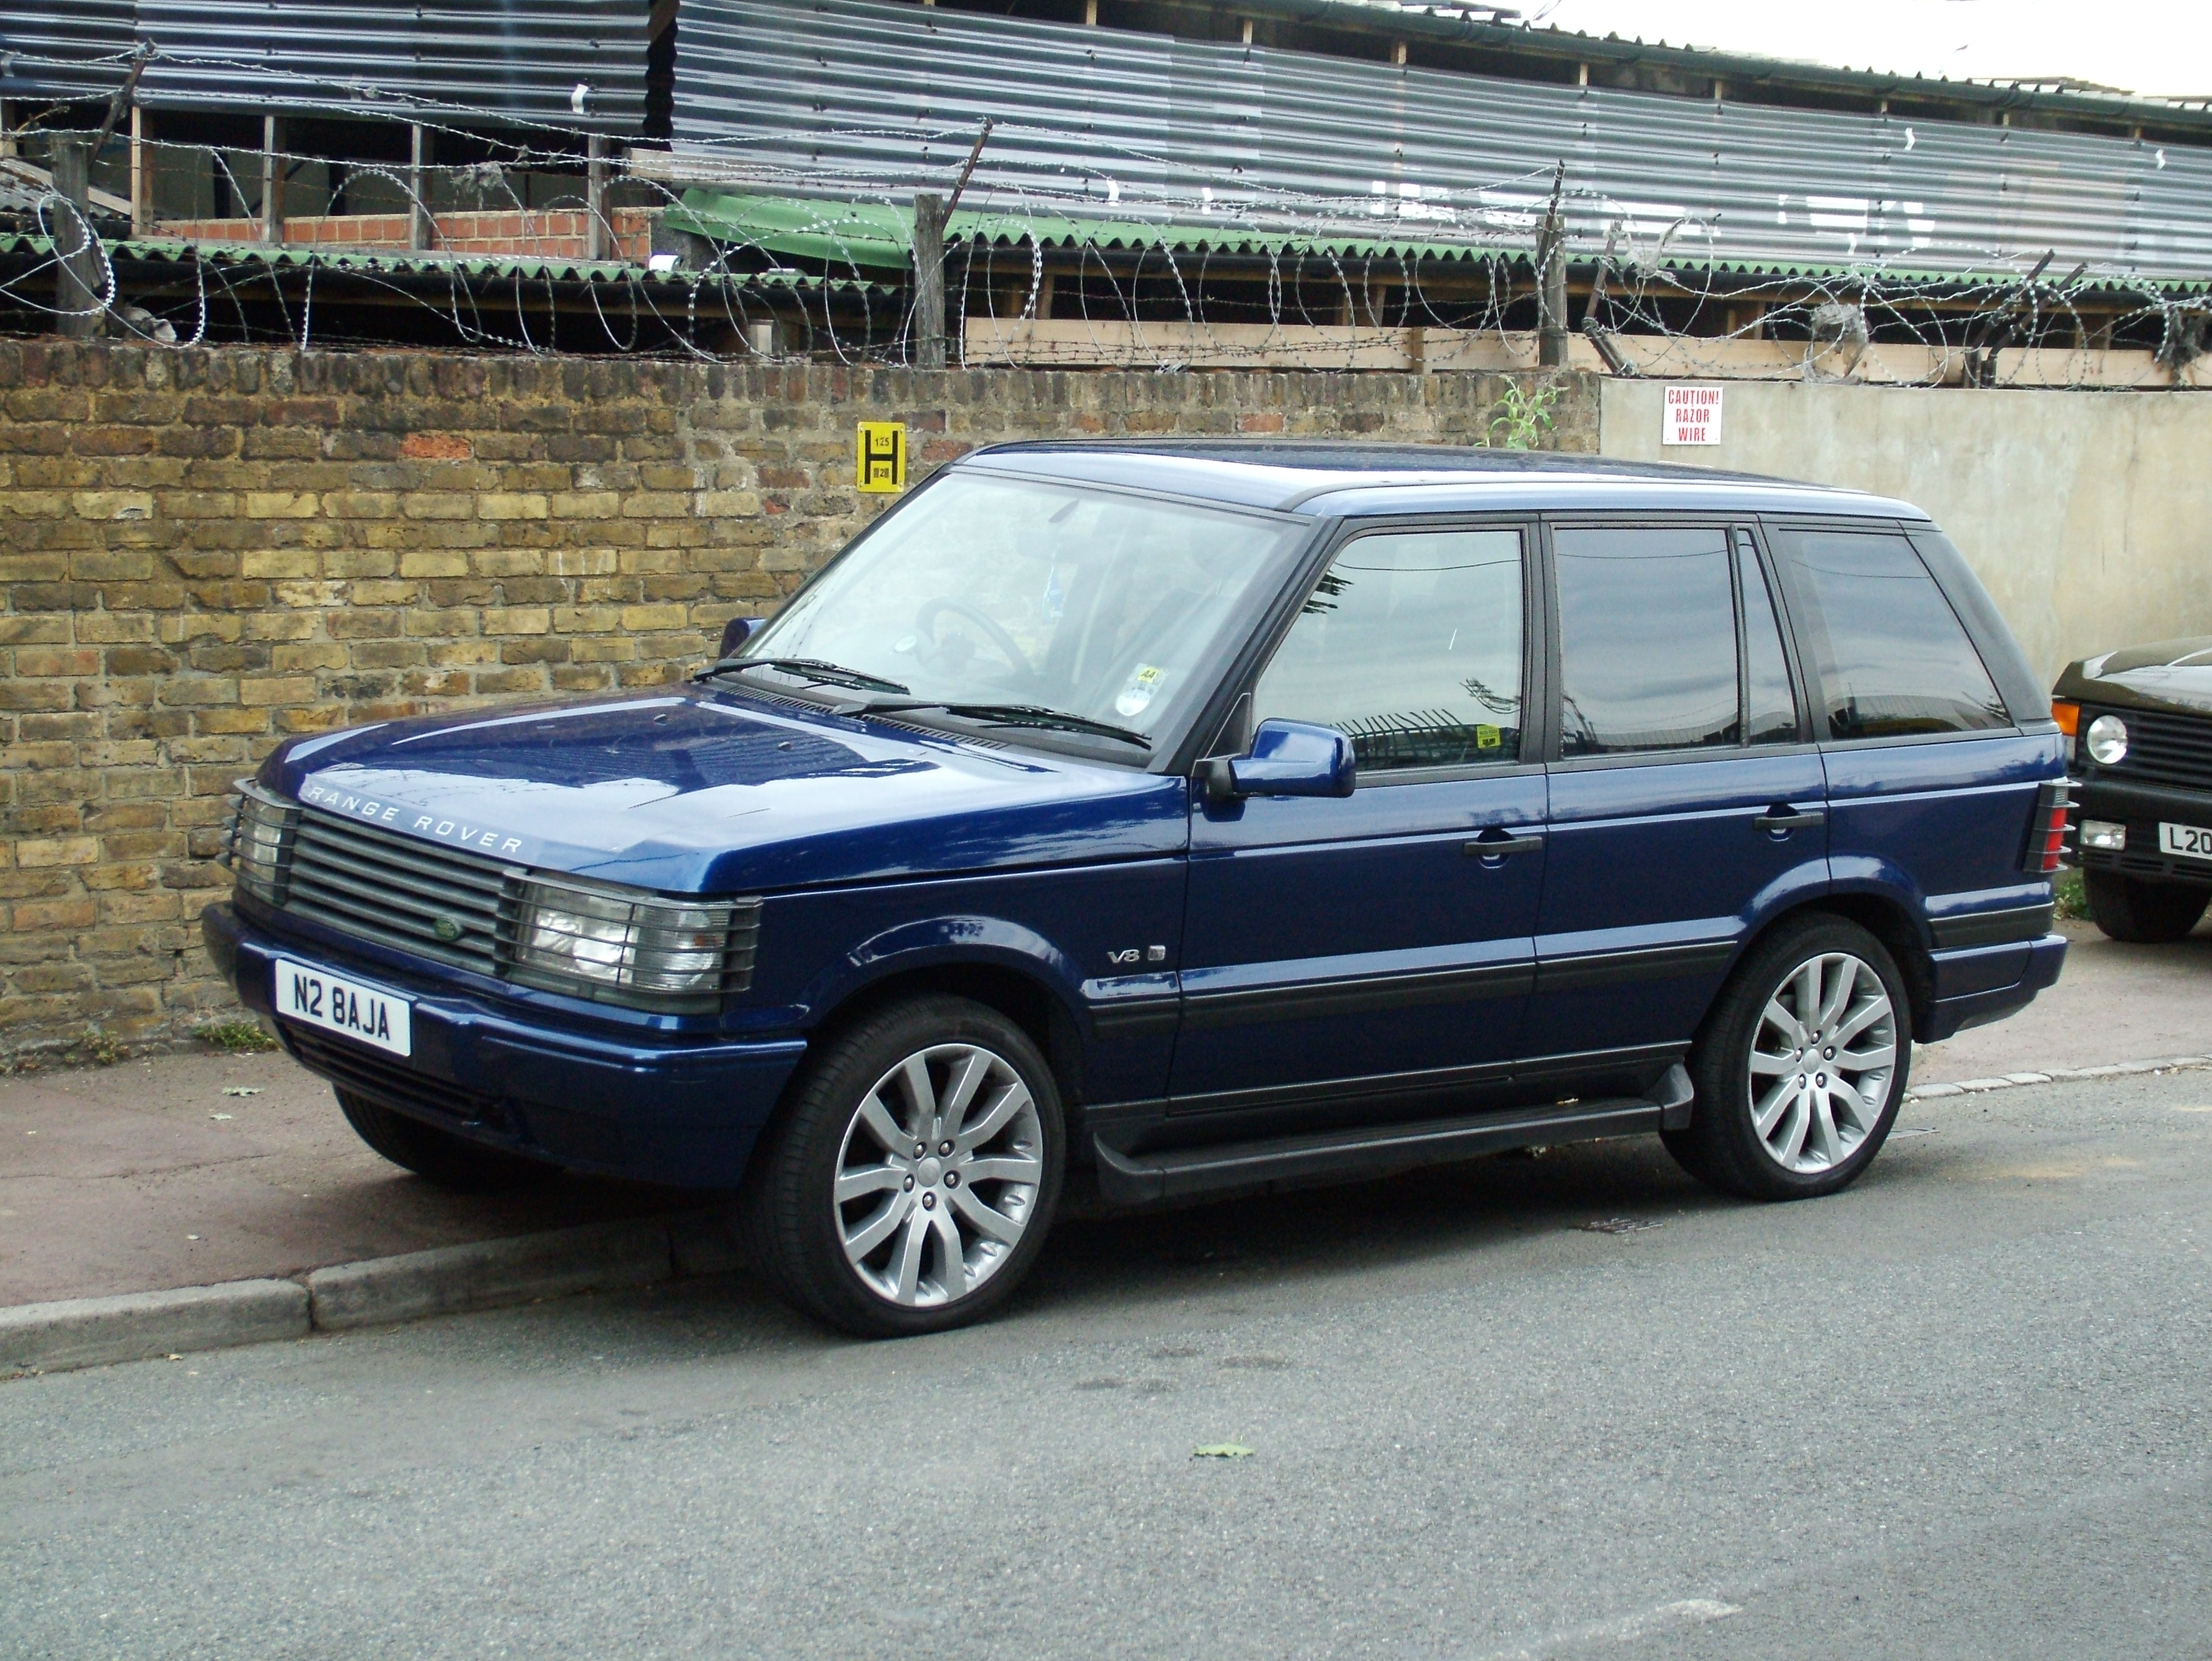 1996 Land Rover Range Rover Images Pictures And Videos